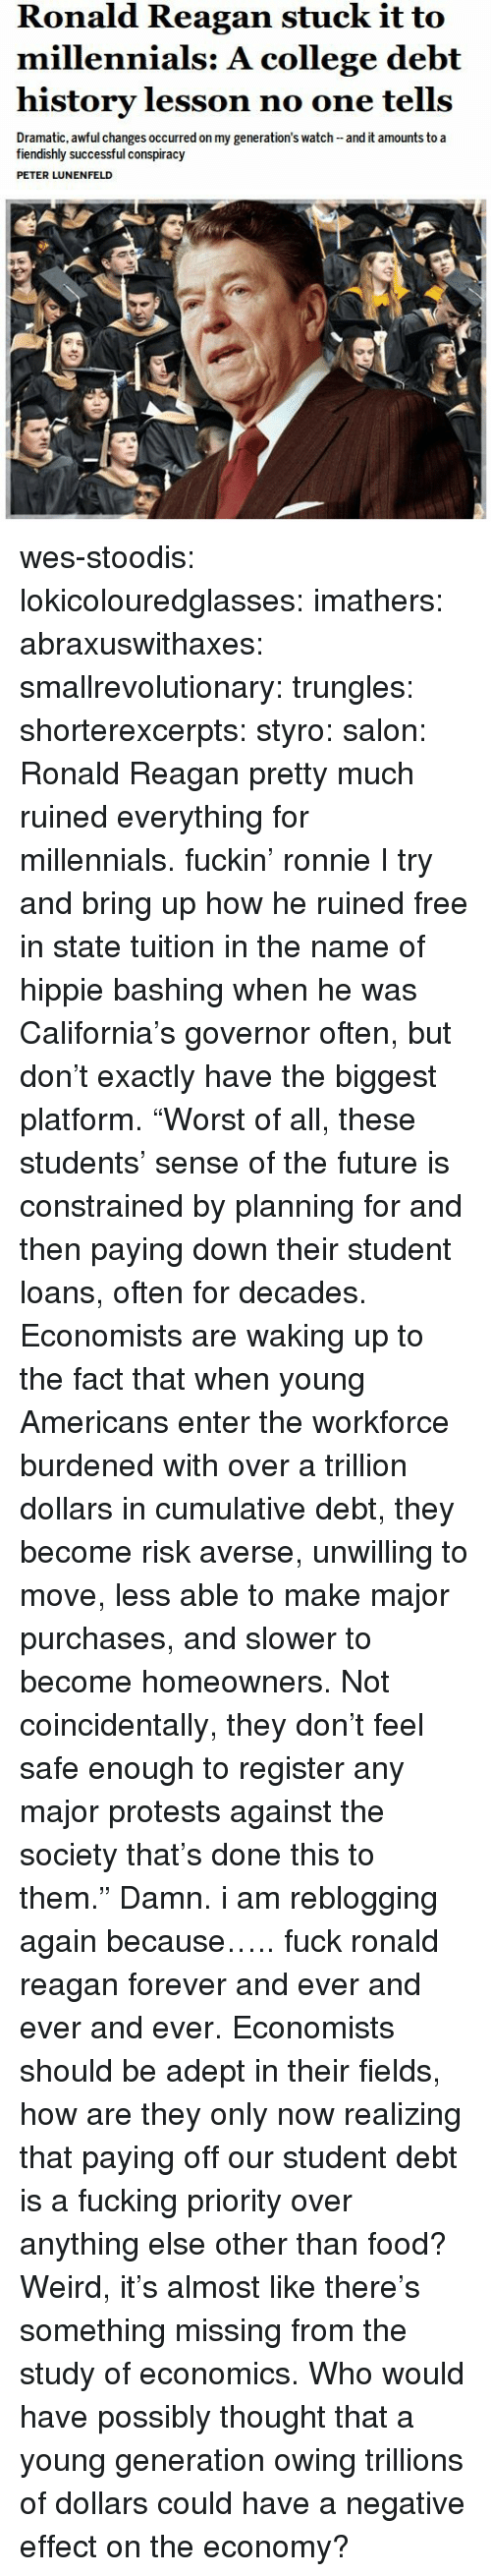 "Protests: Ronald Reagan stuck it to  millennials: A college debt  history lesson no one tells  Dramatic, awful changes occurred on my generation's watch and it amounts to a  fiendishly successful conspiracy  PETER LUNENFELD wes-stoodis:  lokicolouredglasses:  imathers:  abraxuswithaxes:  smallrevolutionary:  trungles:  shorterexcerpts:  styro:  salon:  Ronald Reagan pretty much ruined everything for millennials.   fuckin' ronnie  I try and bring up how he ruined free in state tuition in the name of hippie bashing when he was California's governor often, but don't exactly have the biggest platform.  ""Worst of all, these students' sense of the future is constrained by planning for and then paying down their student loans, often for decades. Economists are waking up to the fact that when young Americans enter the workforce burdened with over a trillion dollars in cumulative debt, they become risk averse, unwilling to move, less able to make major purchases, and slower to become homeowners. Not coincidentally, they don't feel safe enough to register any major protests against the society that's done this to them."" Damn.  i am reblogging again because….. fuck ronald reagan forever and ever and ever and ever.   Economists should be adept in their fields, how are they only now realizing that paying off our student debt is a fucking priority over anything else other than food?  Weird, it's almost like there's something missing from the study of economics.  Who would have possibly thought that a young generation owing trillions of dollars could have a negative effect on the economy?"